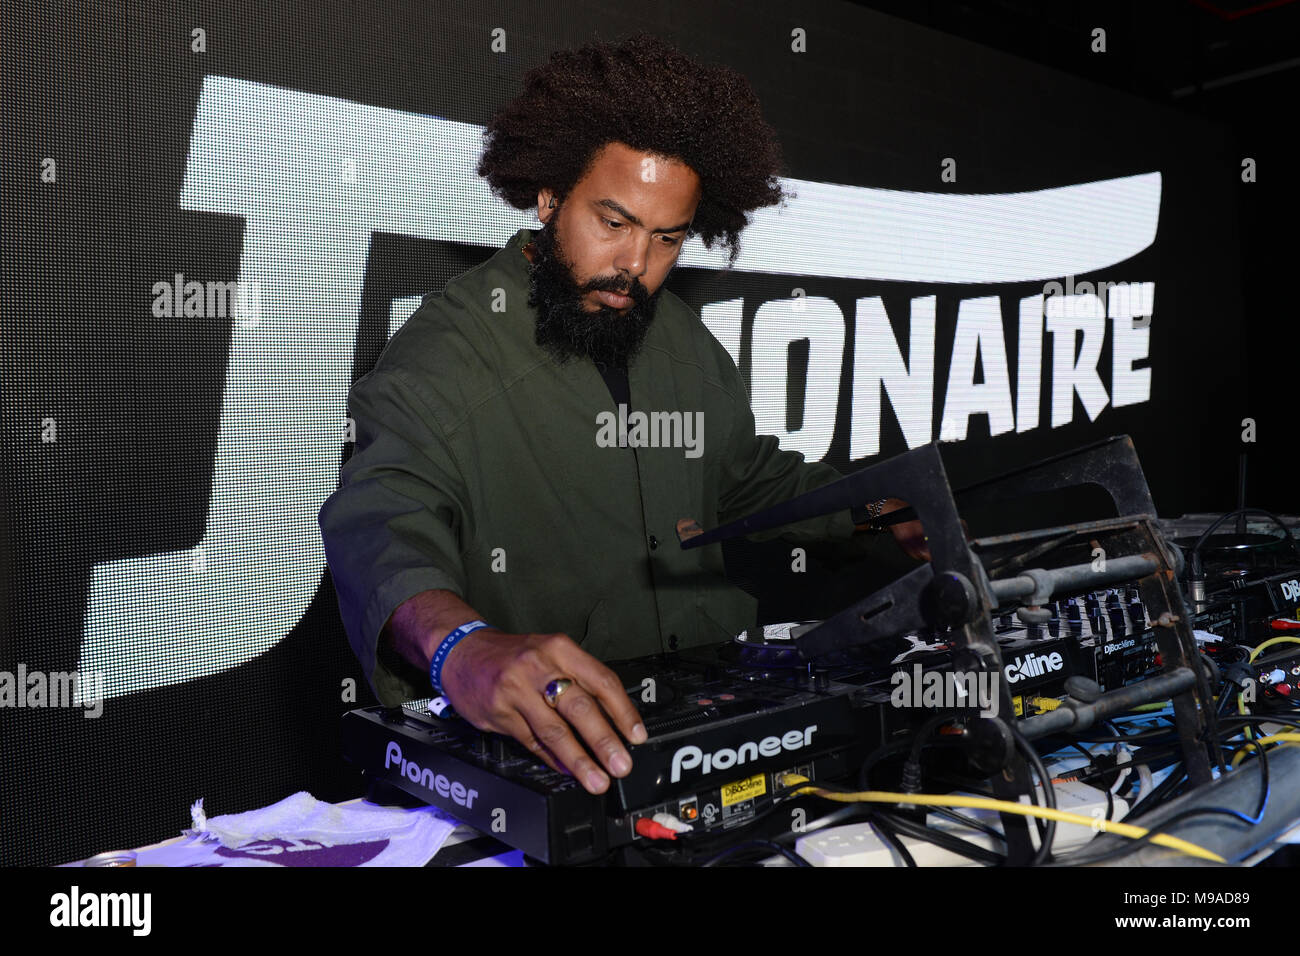 Miami Beach, FL, USA. 23rd Mar, 2018. Jillionaire performs during Miami Music Weekend Hits 97.3 Hotel at the Clevelander Hotel on March 23, 2018 in Miami Beach, Florida. Credit: Mpi04/Media Punch/Alamy Live News Stock Photo